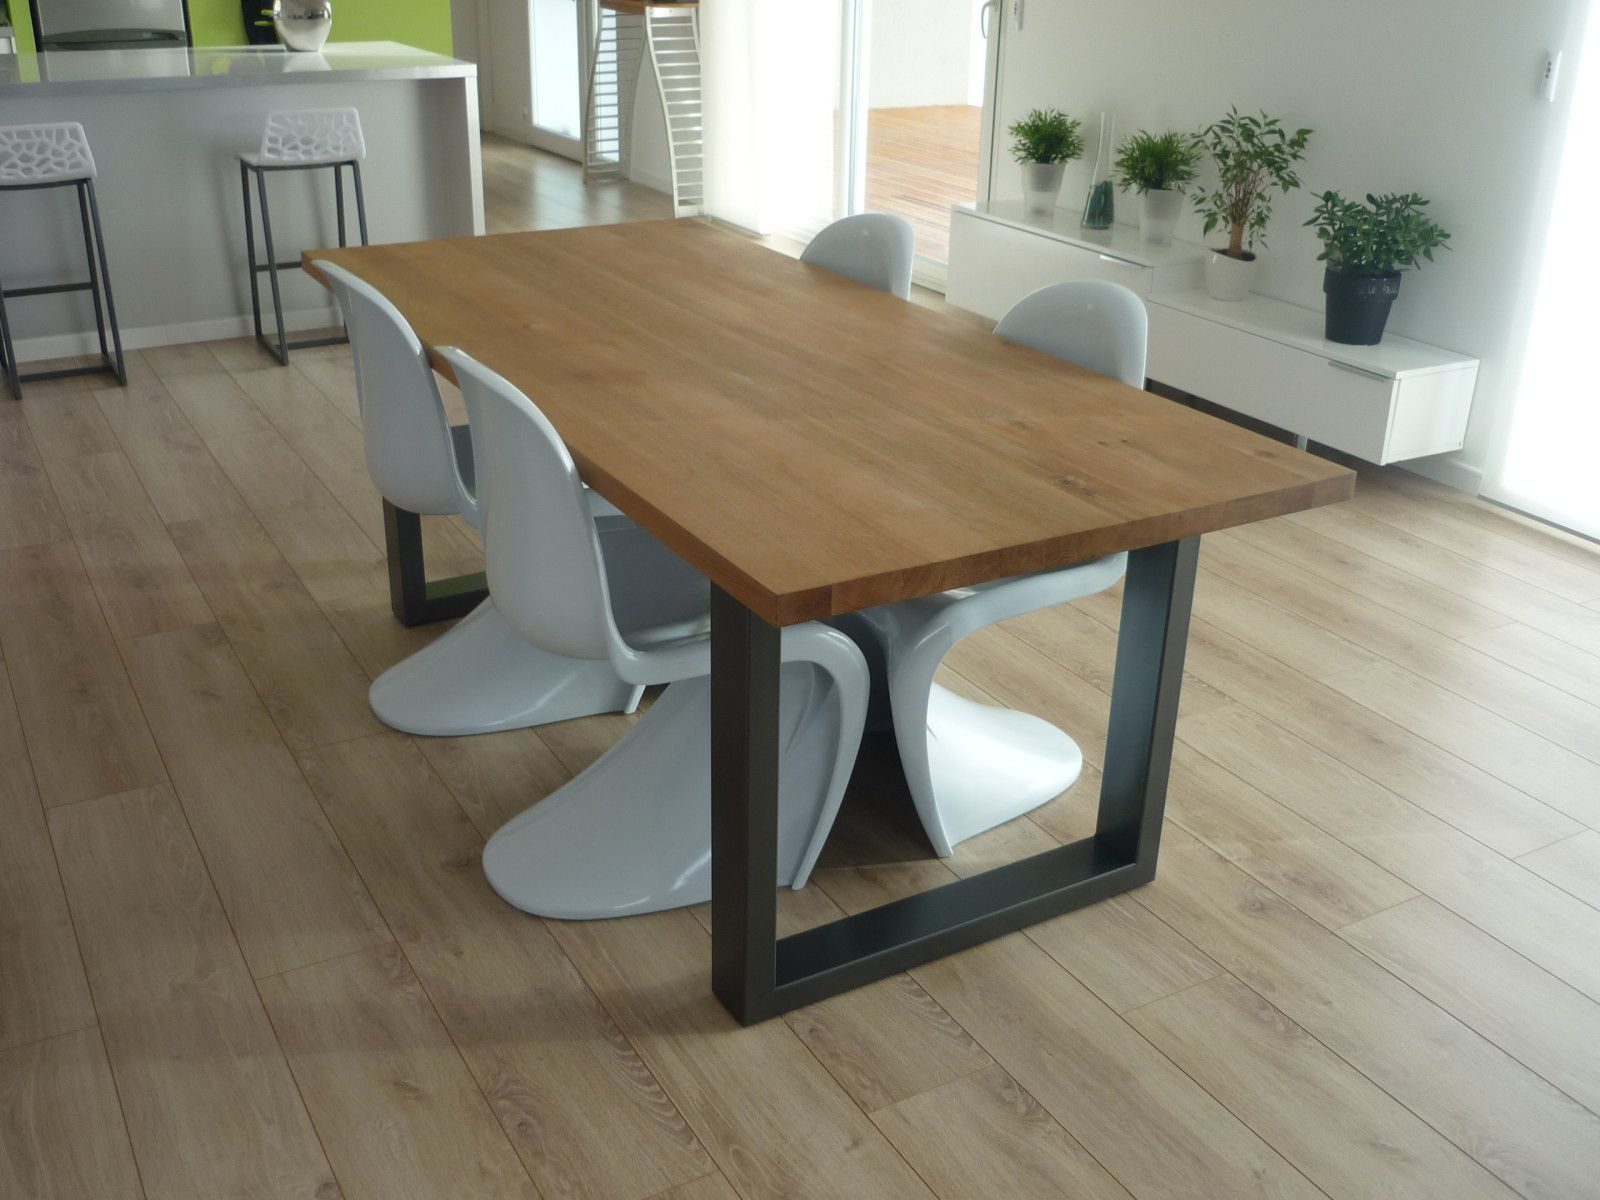 Dimension Table Ronde 6 Personnes Table 6 8 Personnes